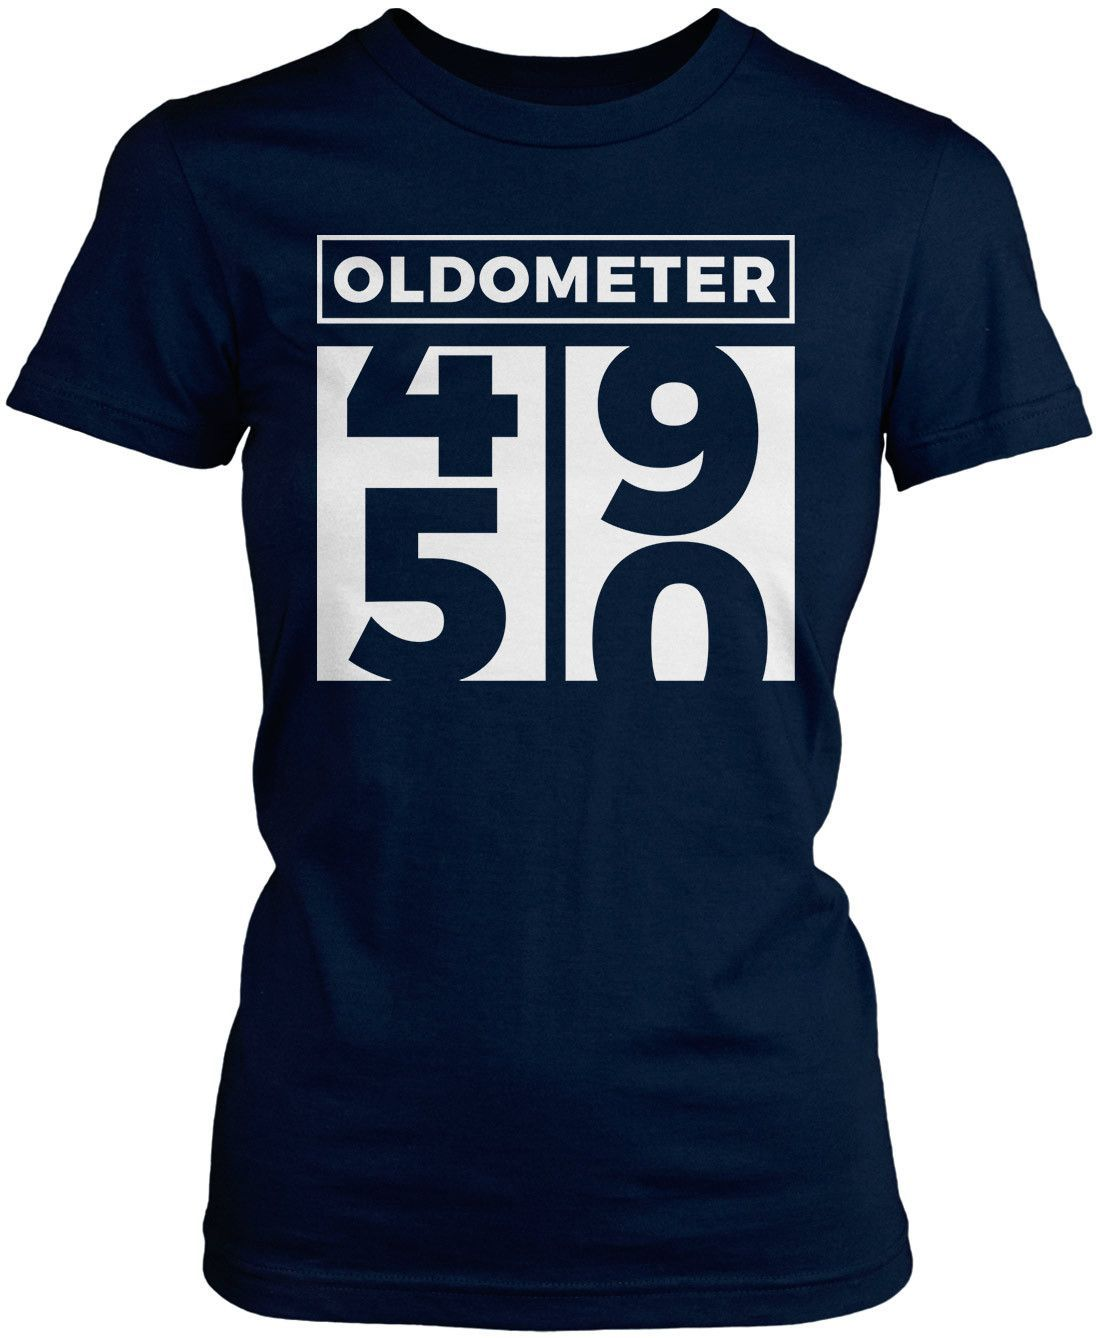 199a64ed70 Oldometer - Turning 50 Almost fifty? Then this is the perfect t-shirt for  you. Get yours now! Premium &Women's Fit T-Shirt Made from 100% pre-shrunk  cotton ...